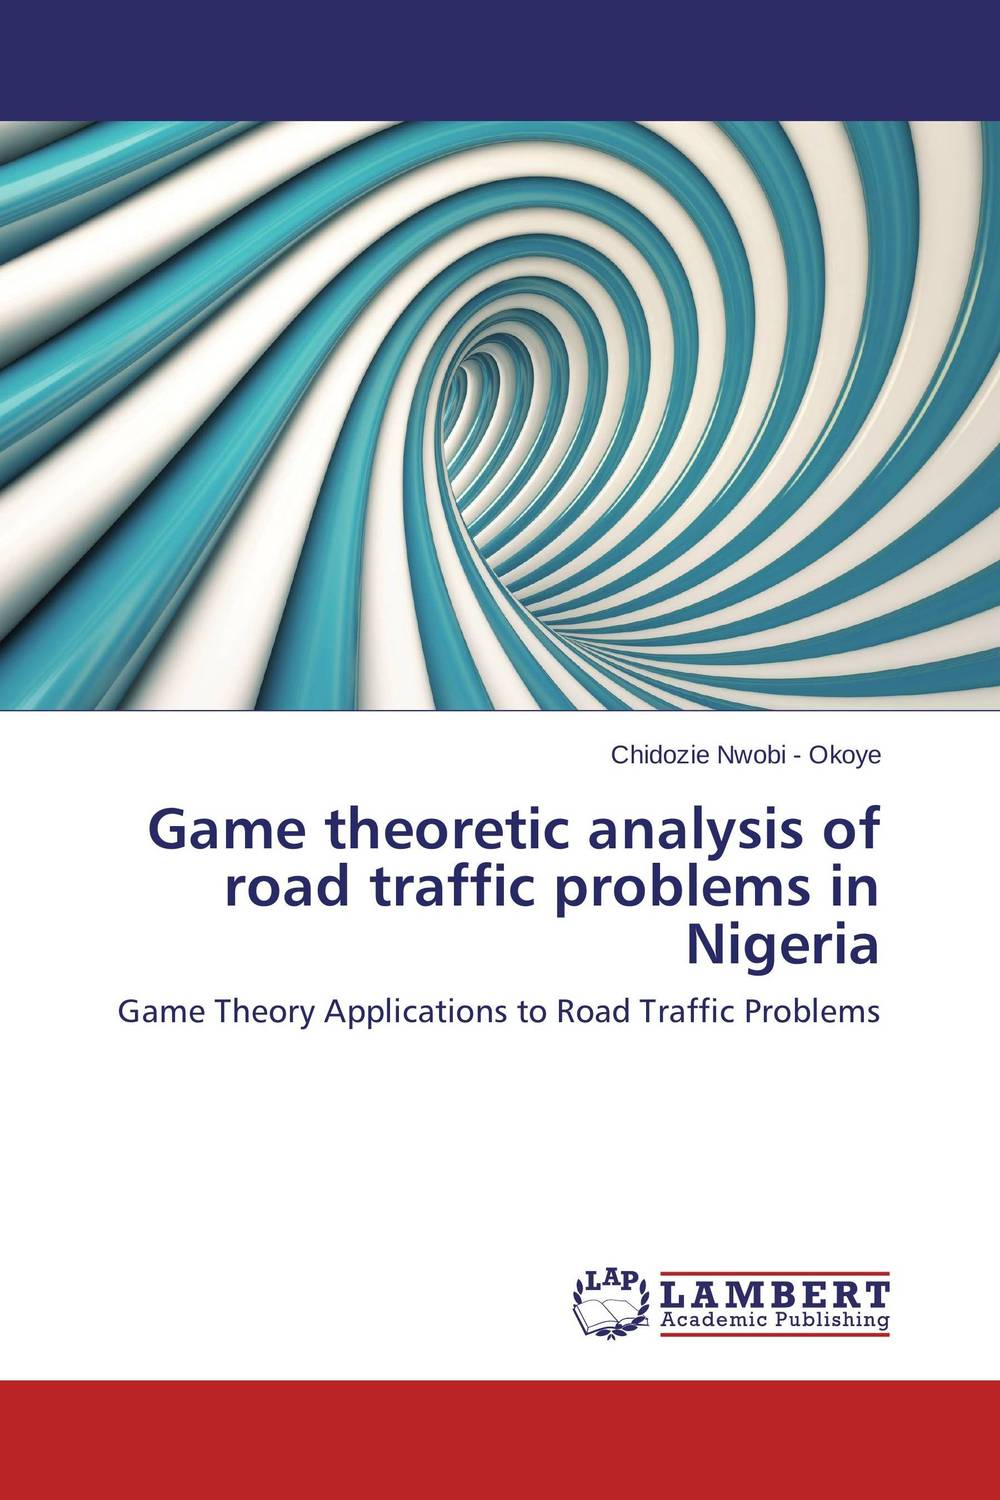 Game theoretic analysis of road traffic problems in Nigeria